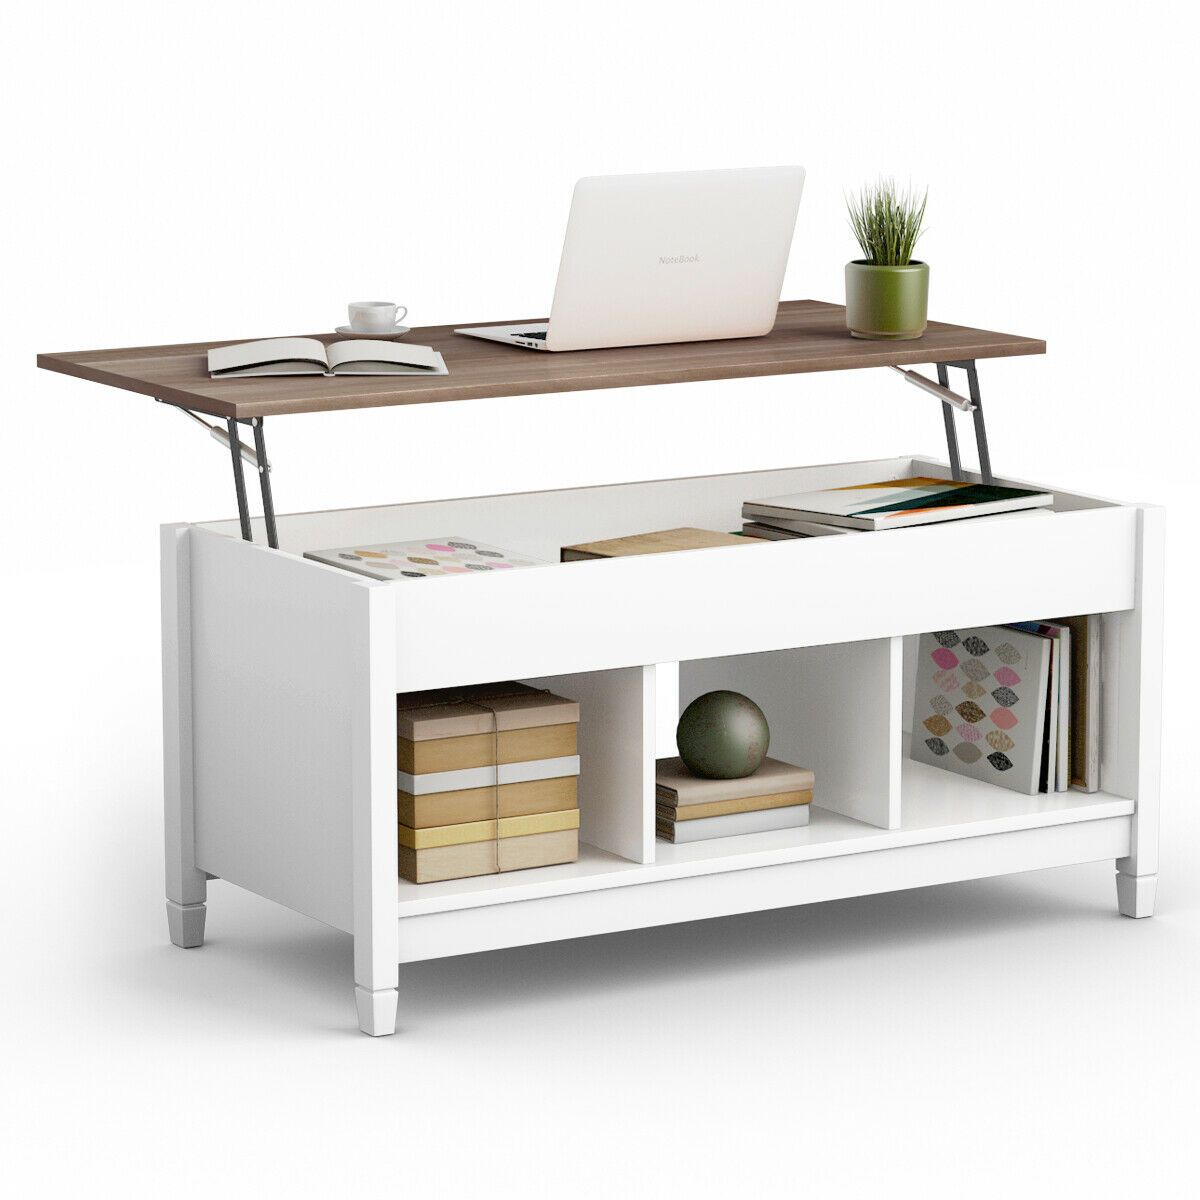 Lift Top Coffee Table With Hidden Storage Compartment Coffee Table With Hidden Storage Coffee Table Small Space Wood Lift Top Coffee Table [ 1200 x 1200 Pixel ]